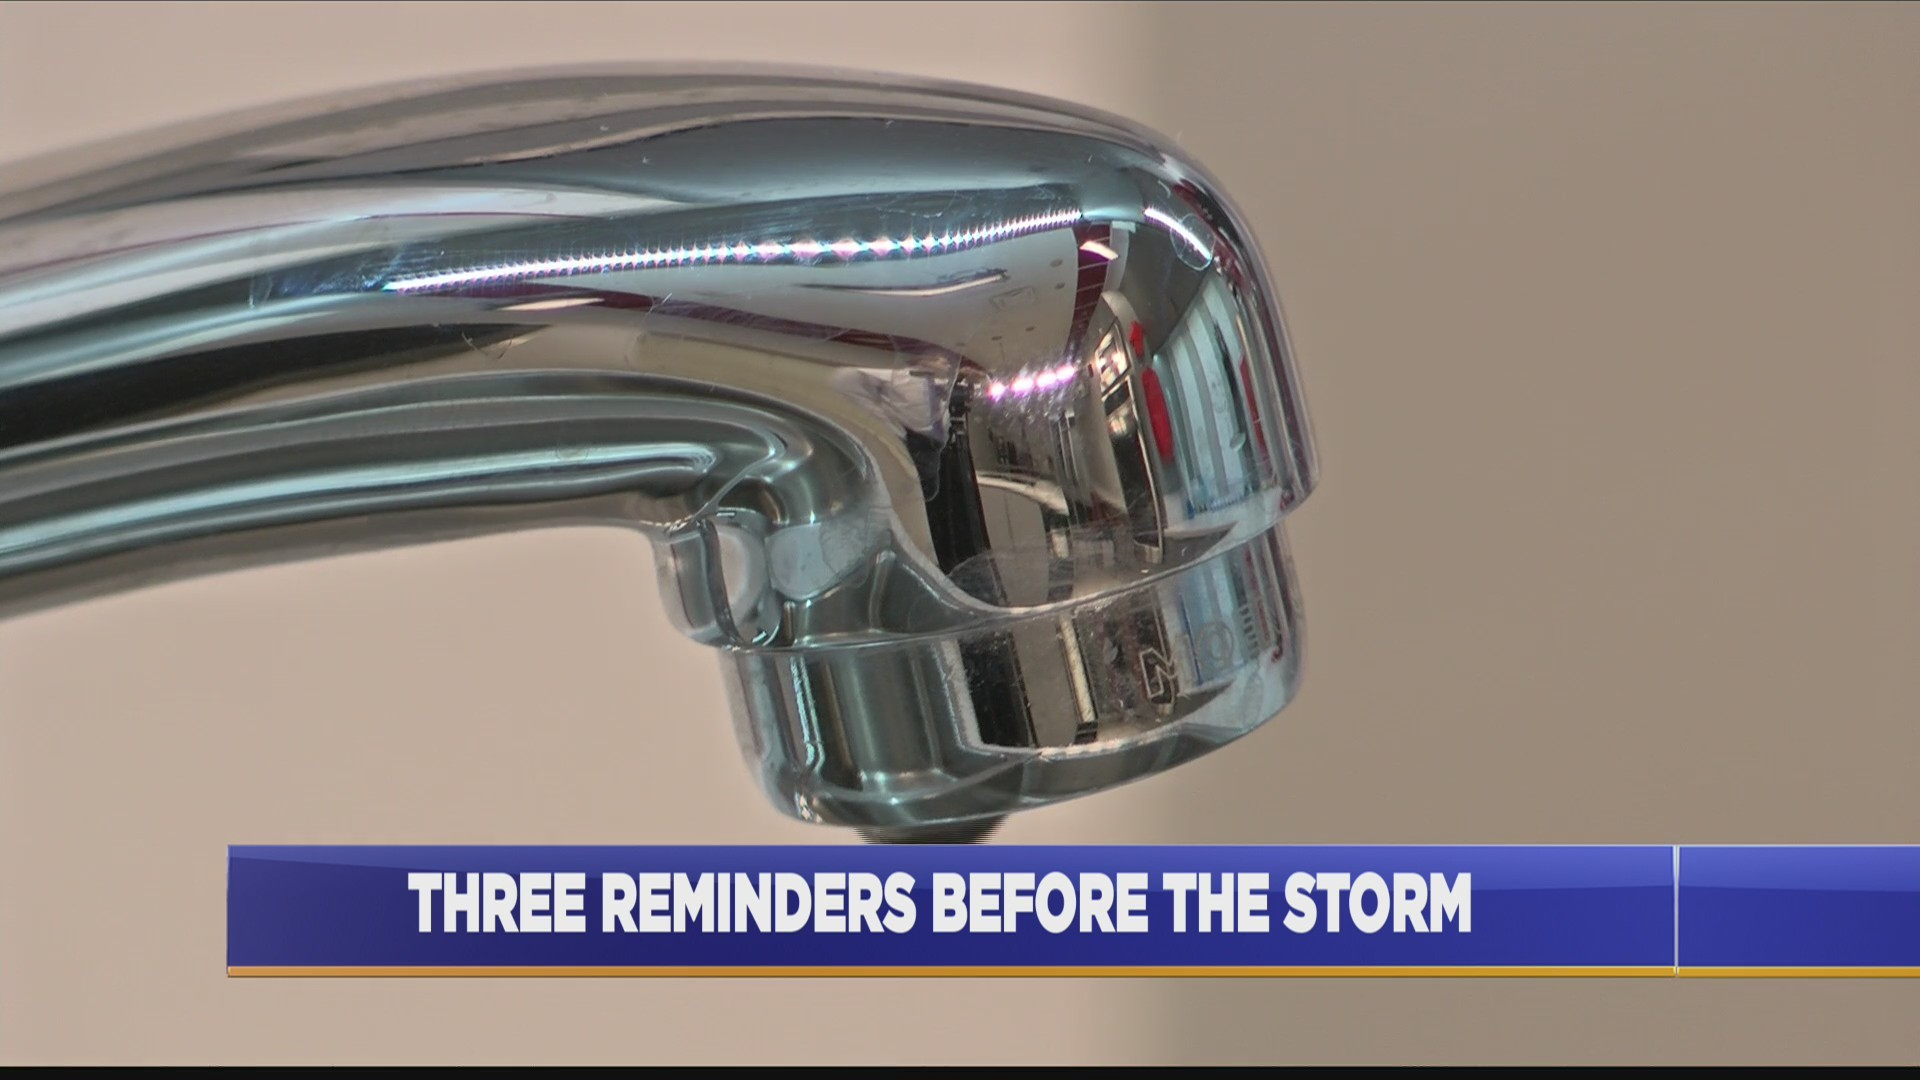 State Farm agent gives three reminders before storm